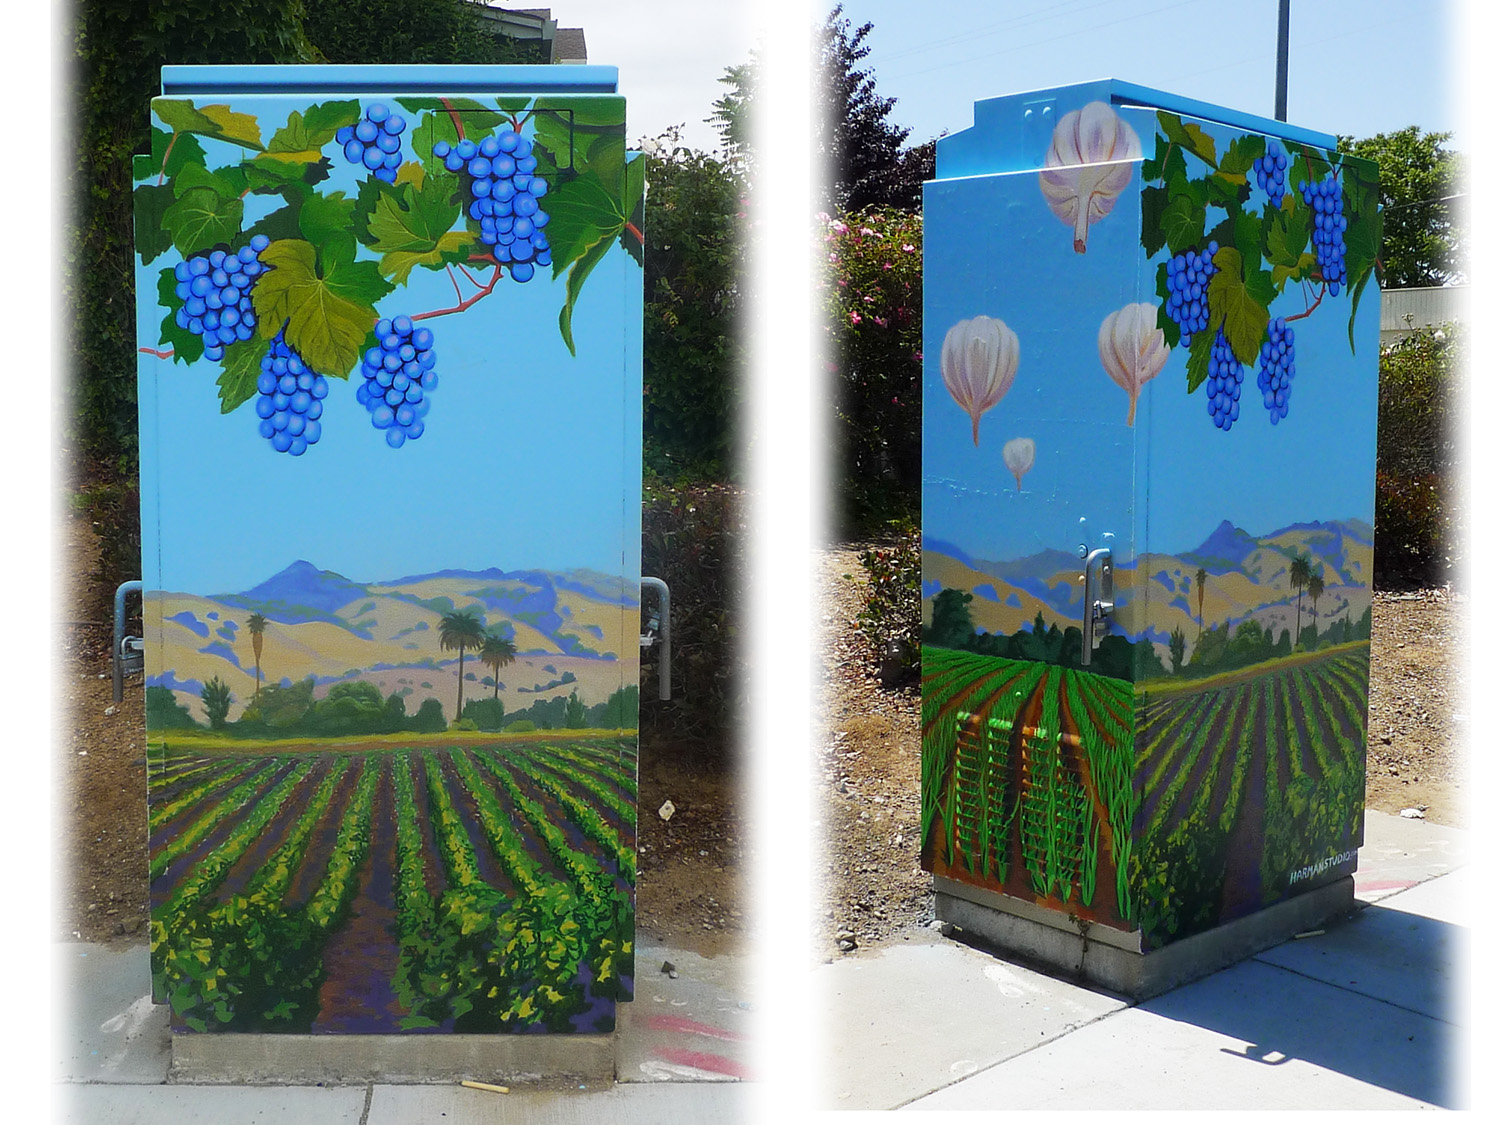 Gilroy is famous for it's garlic agriculture, as well as being home to many fine vineyards.